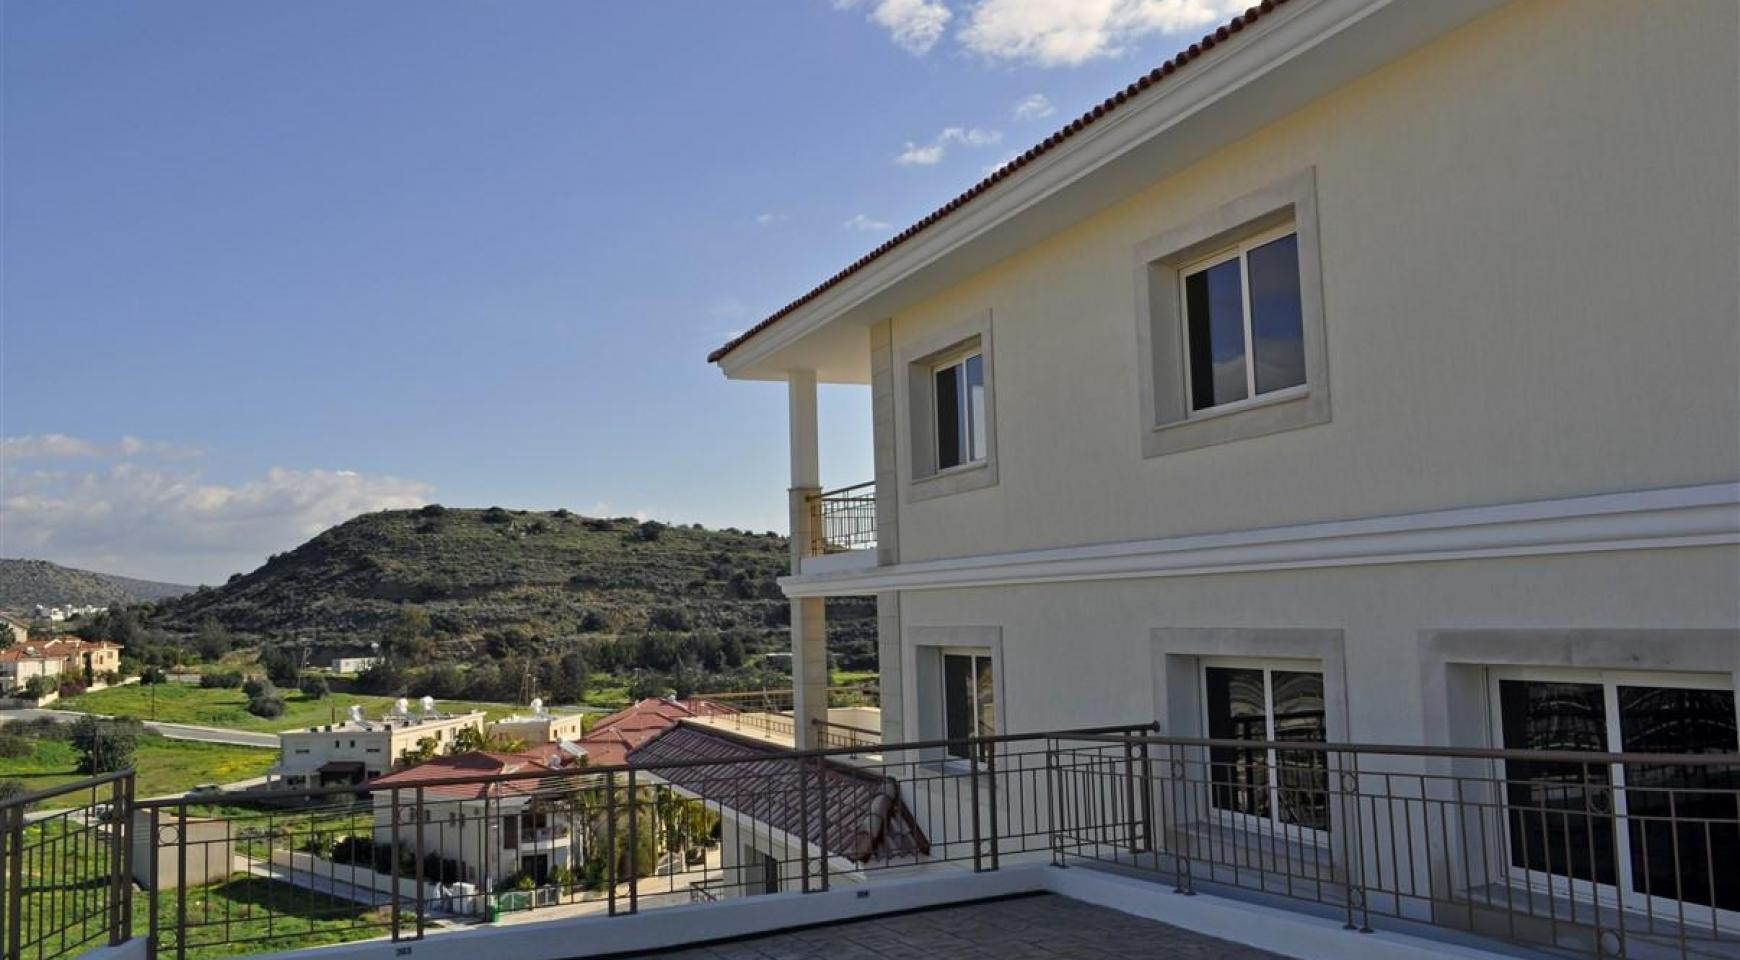 2 Bedroom Apartment with Amazing Views in Agios Athanasios - 6